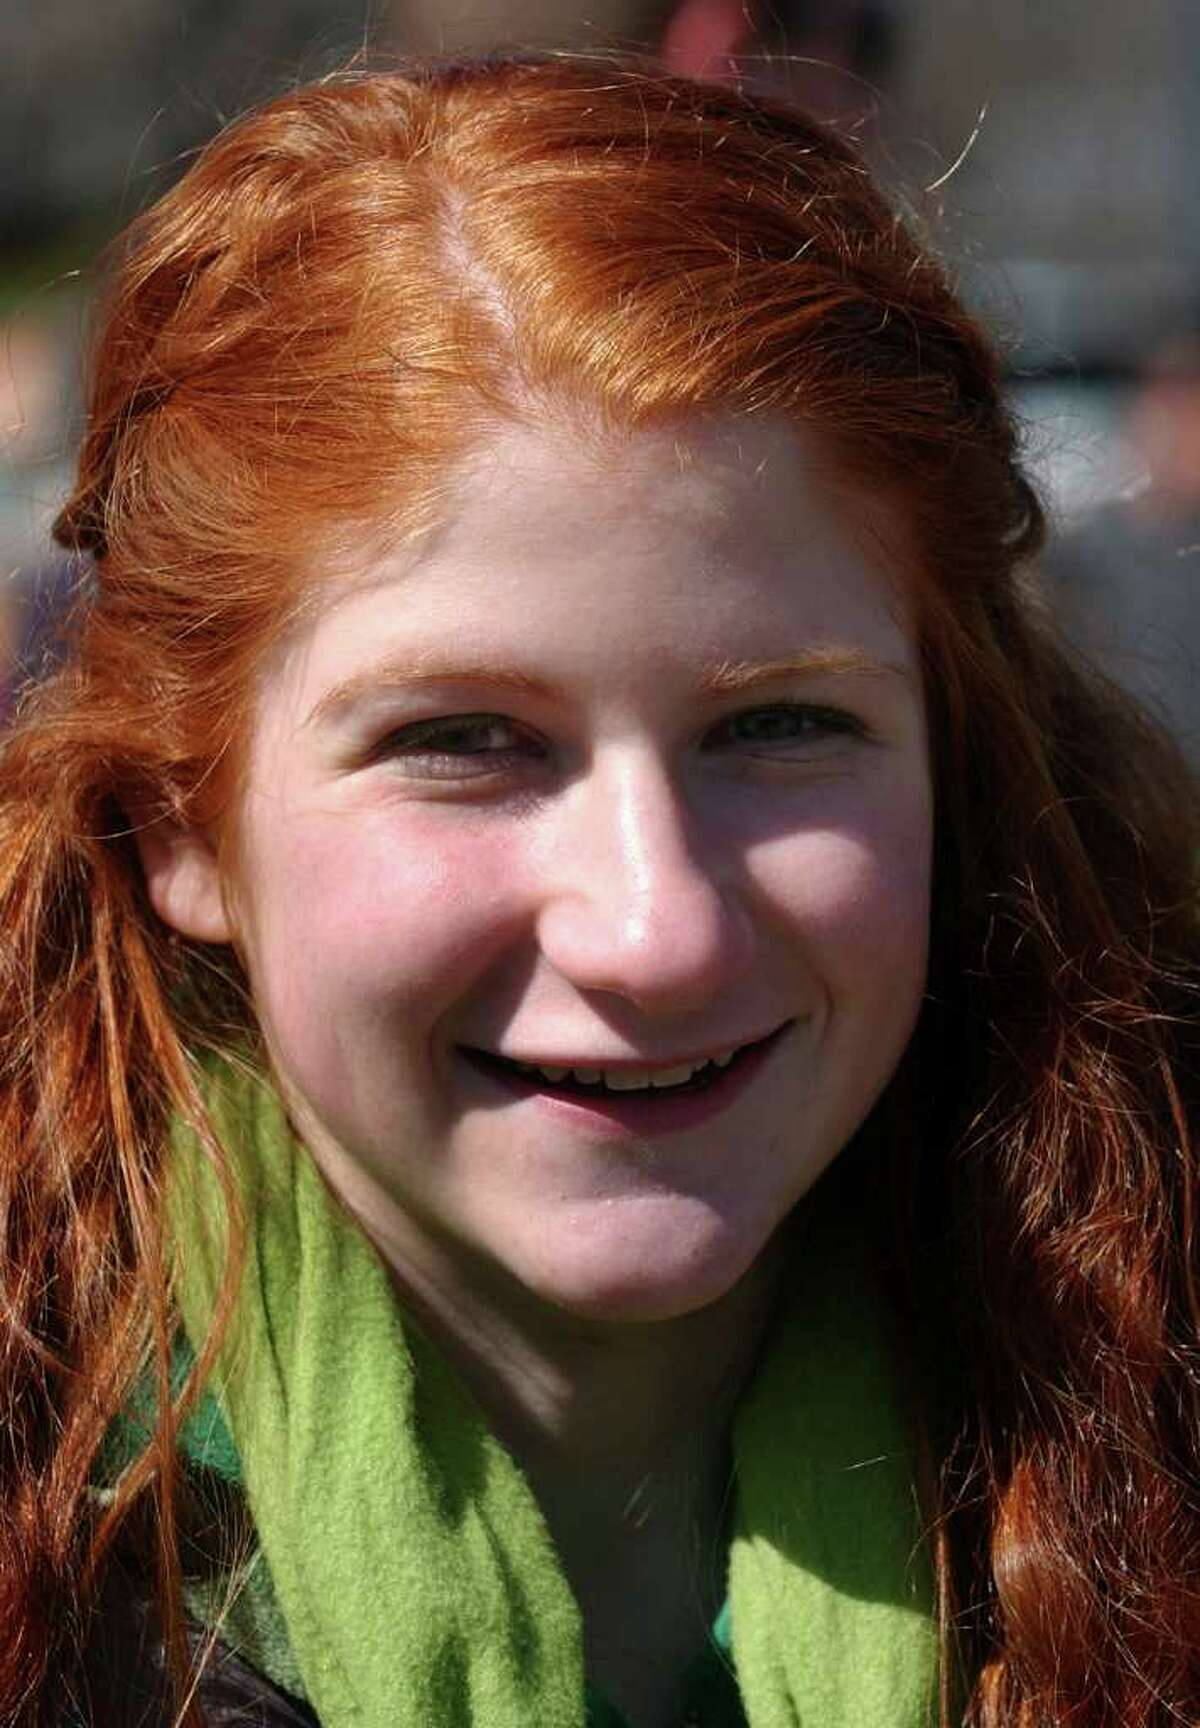 Casey Wilcox, of Milford, attends the St. Patrick's Day Parade in downtown Milford, Conn. on Saturday March 10, 2012.